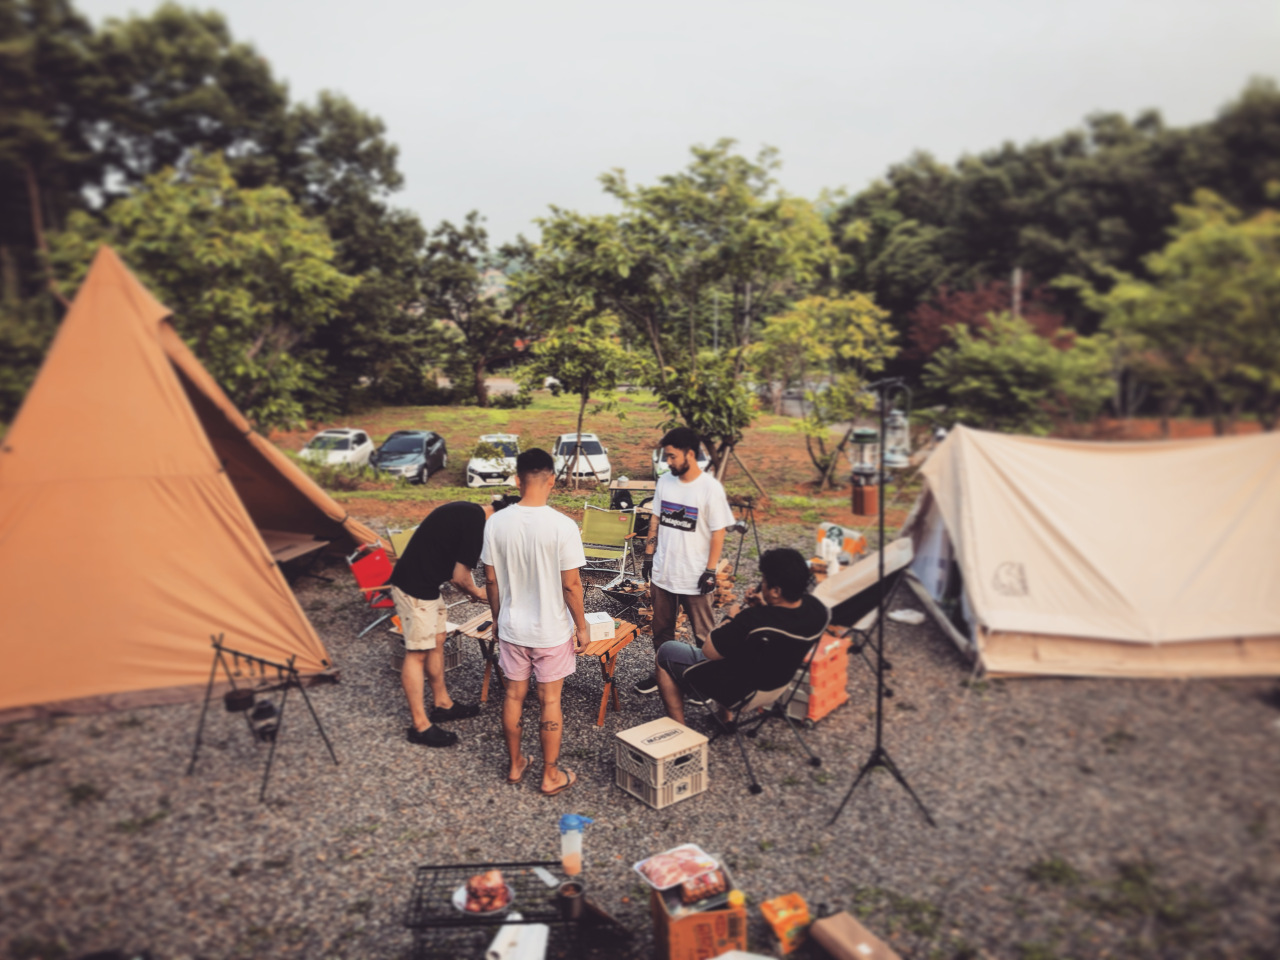 Office worker Kim Su-hyeon and his friends while camping (Courtesy of Kim)